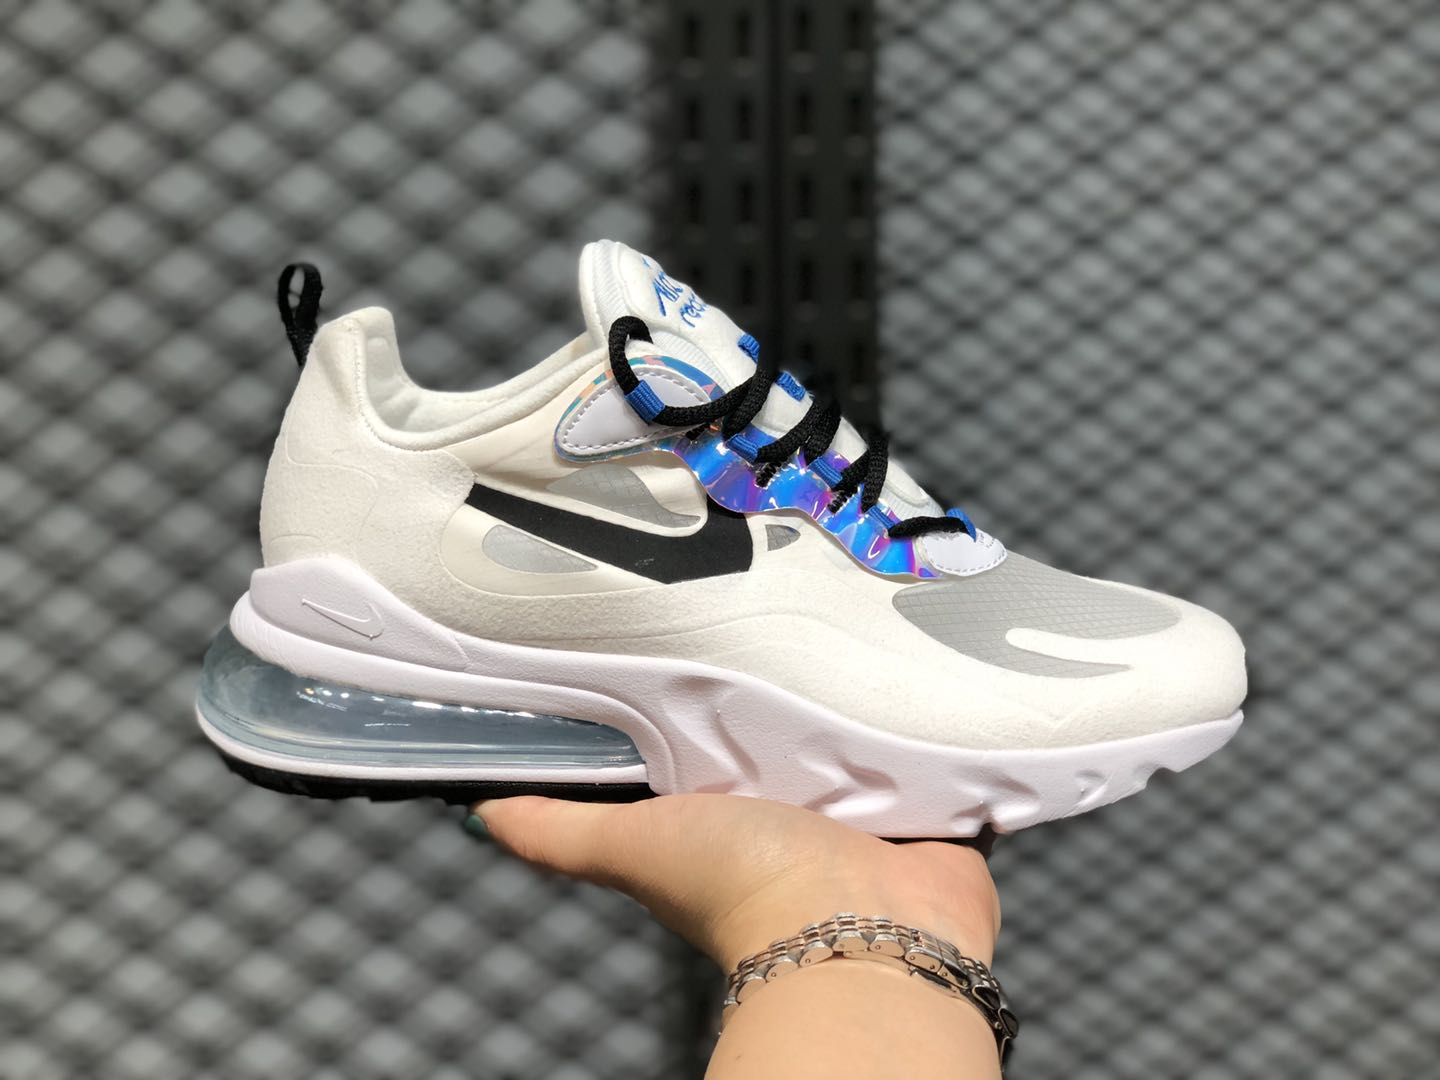 Nike Air Max 270 React Amethyst Tint/Off Noir-Blue Hero CT1613-500